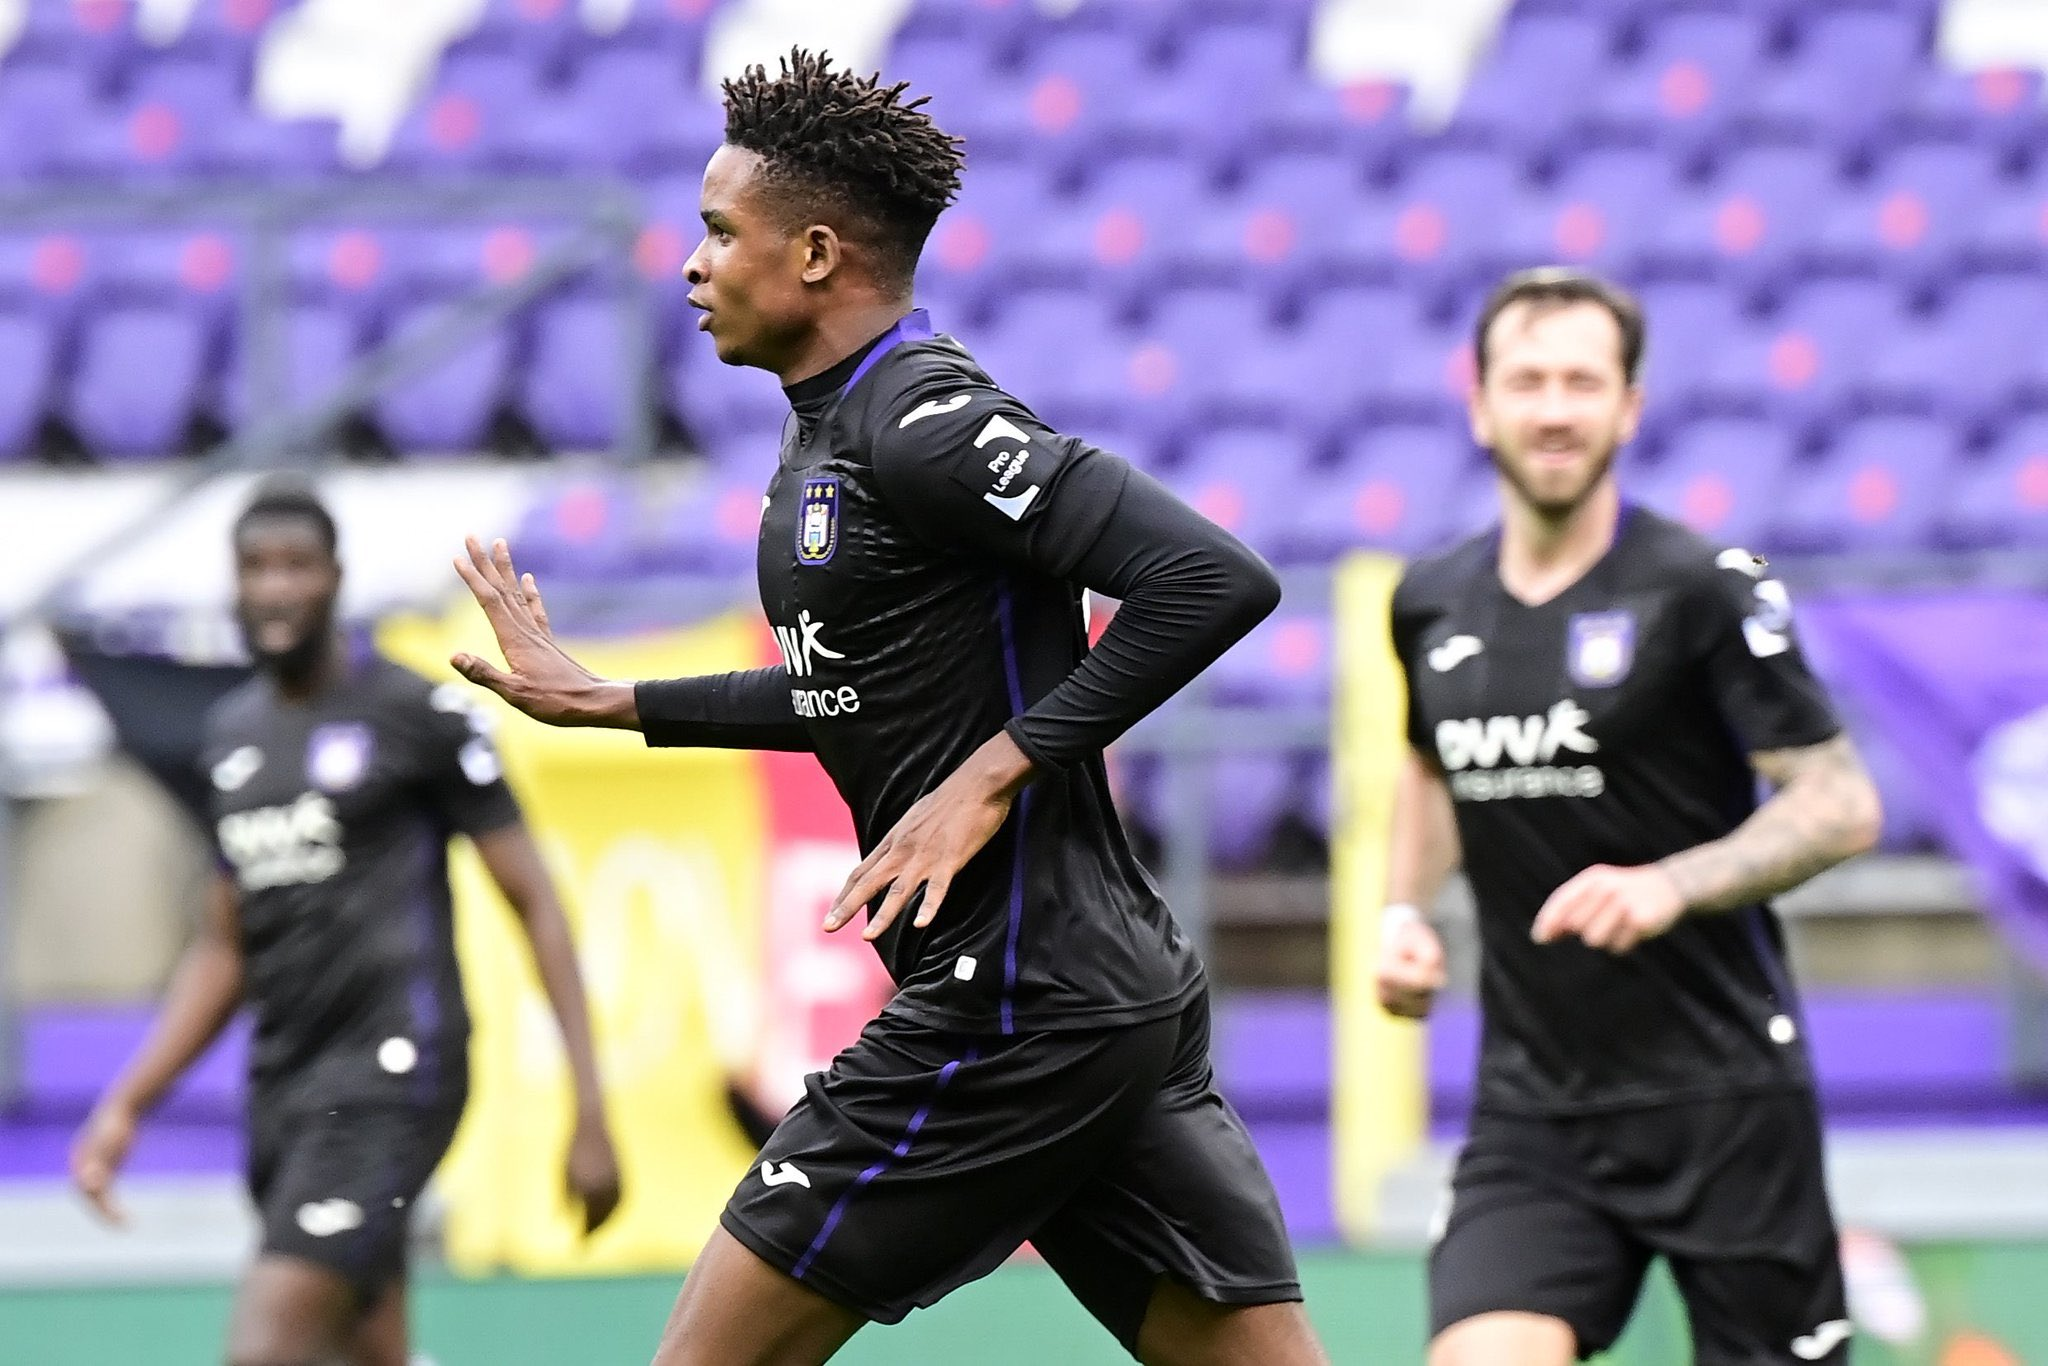 'He Has Everthing To Become A Special Player'- Kompany In Awe Of Mukairu's Quality